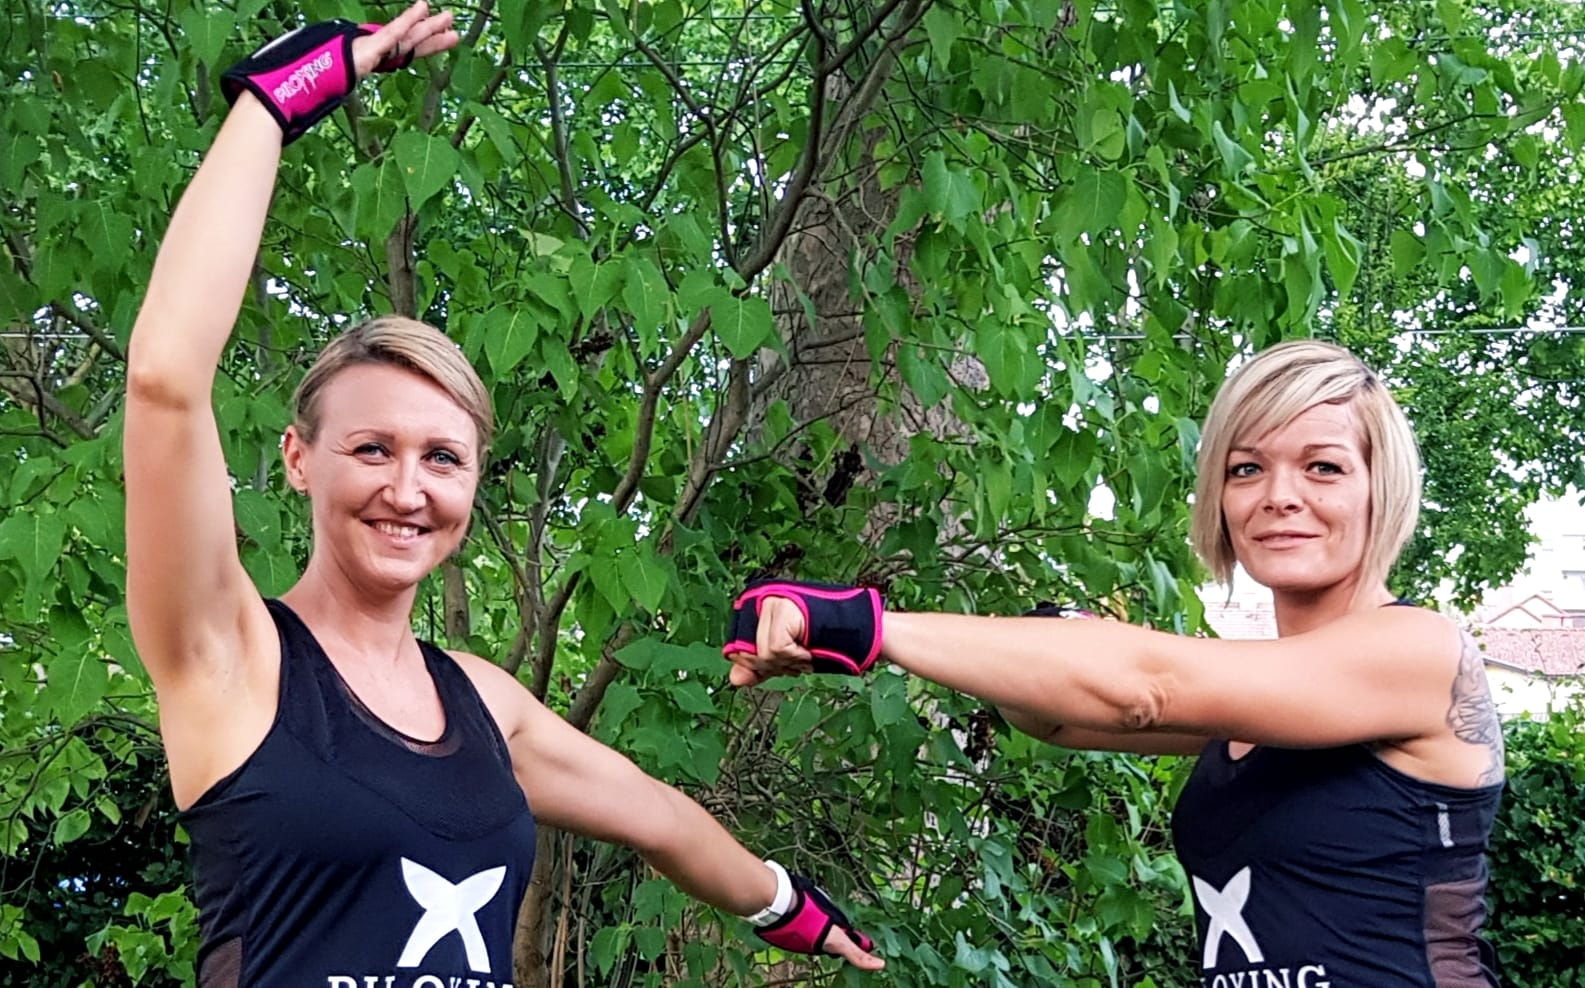 PILOXING ab Herbst im Turnprogramm